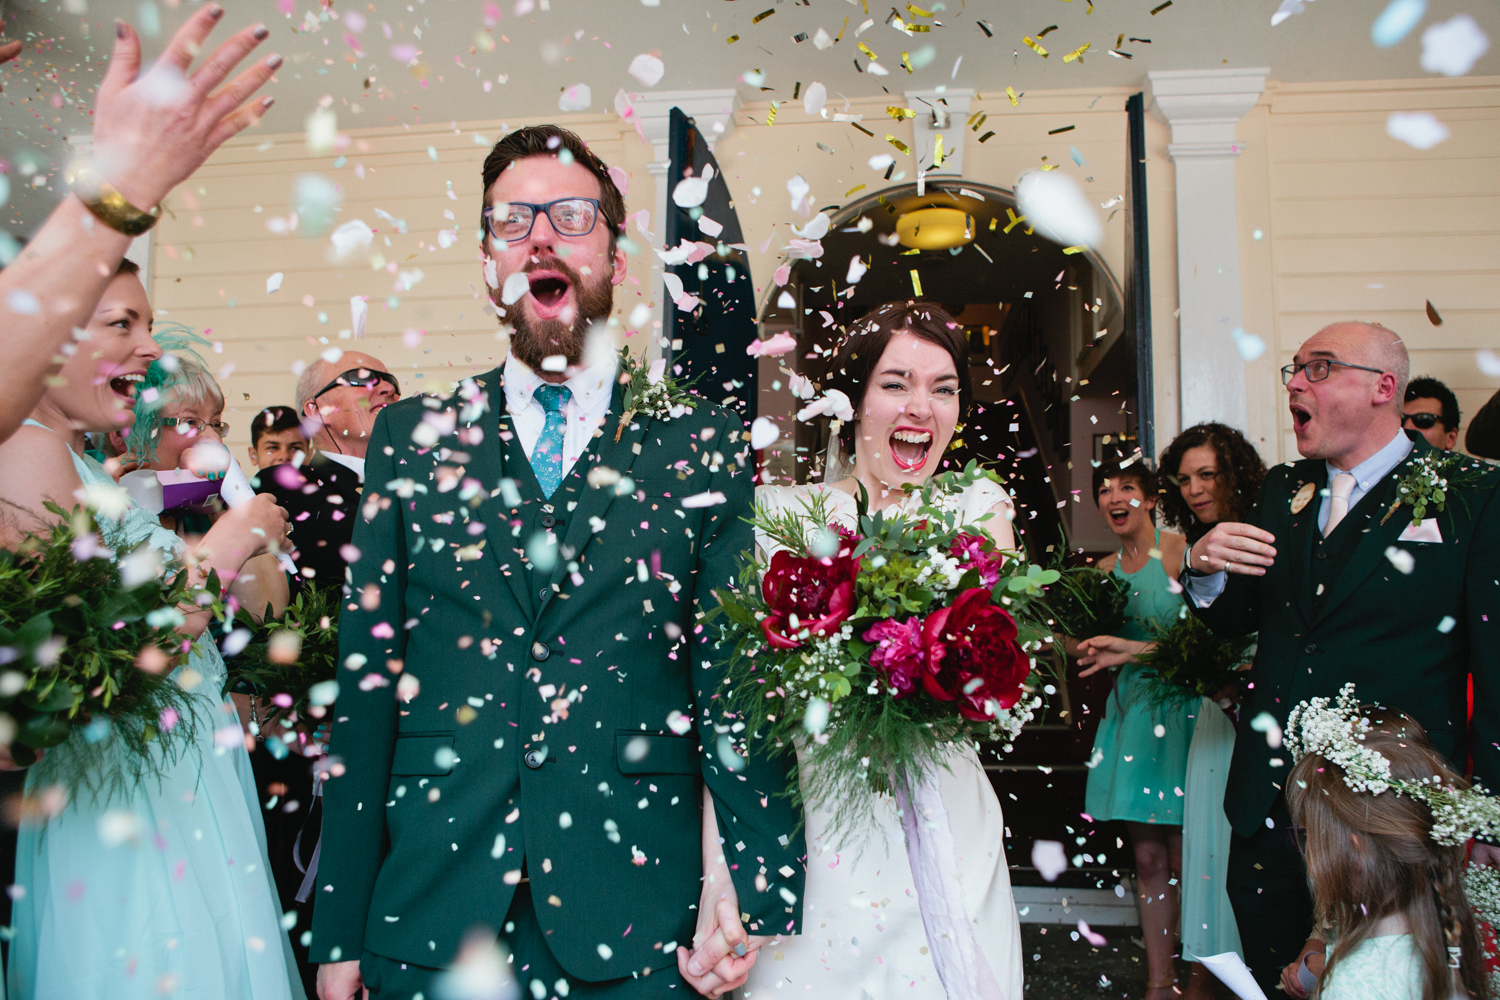 A confetti shot with a confetti canon taken by Natural Kent Wedding Photographer Matilda Delves